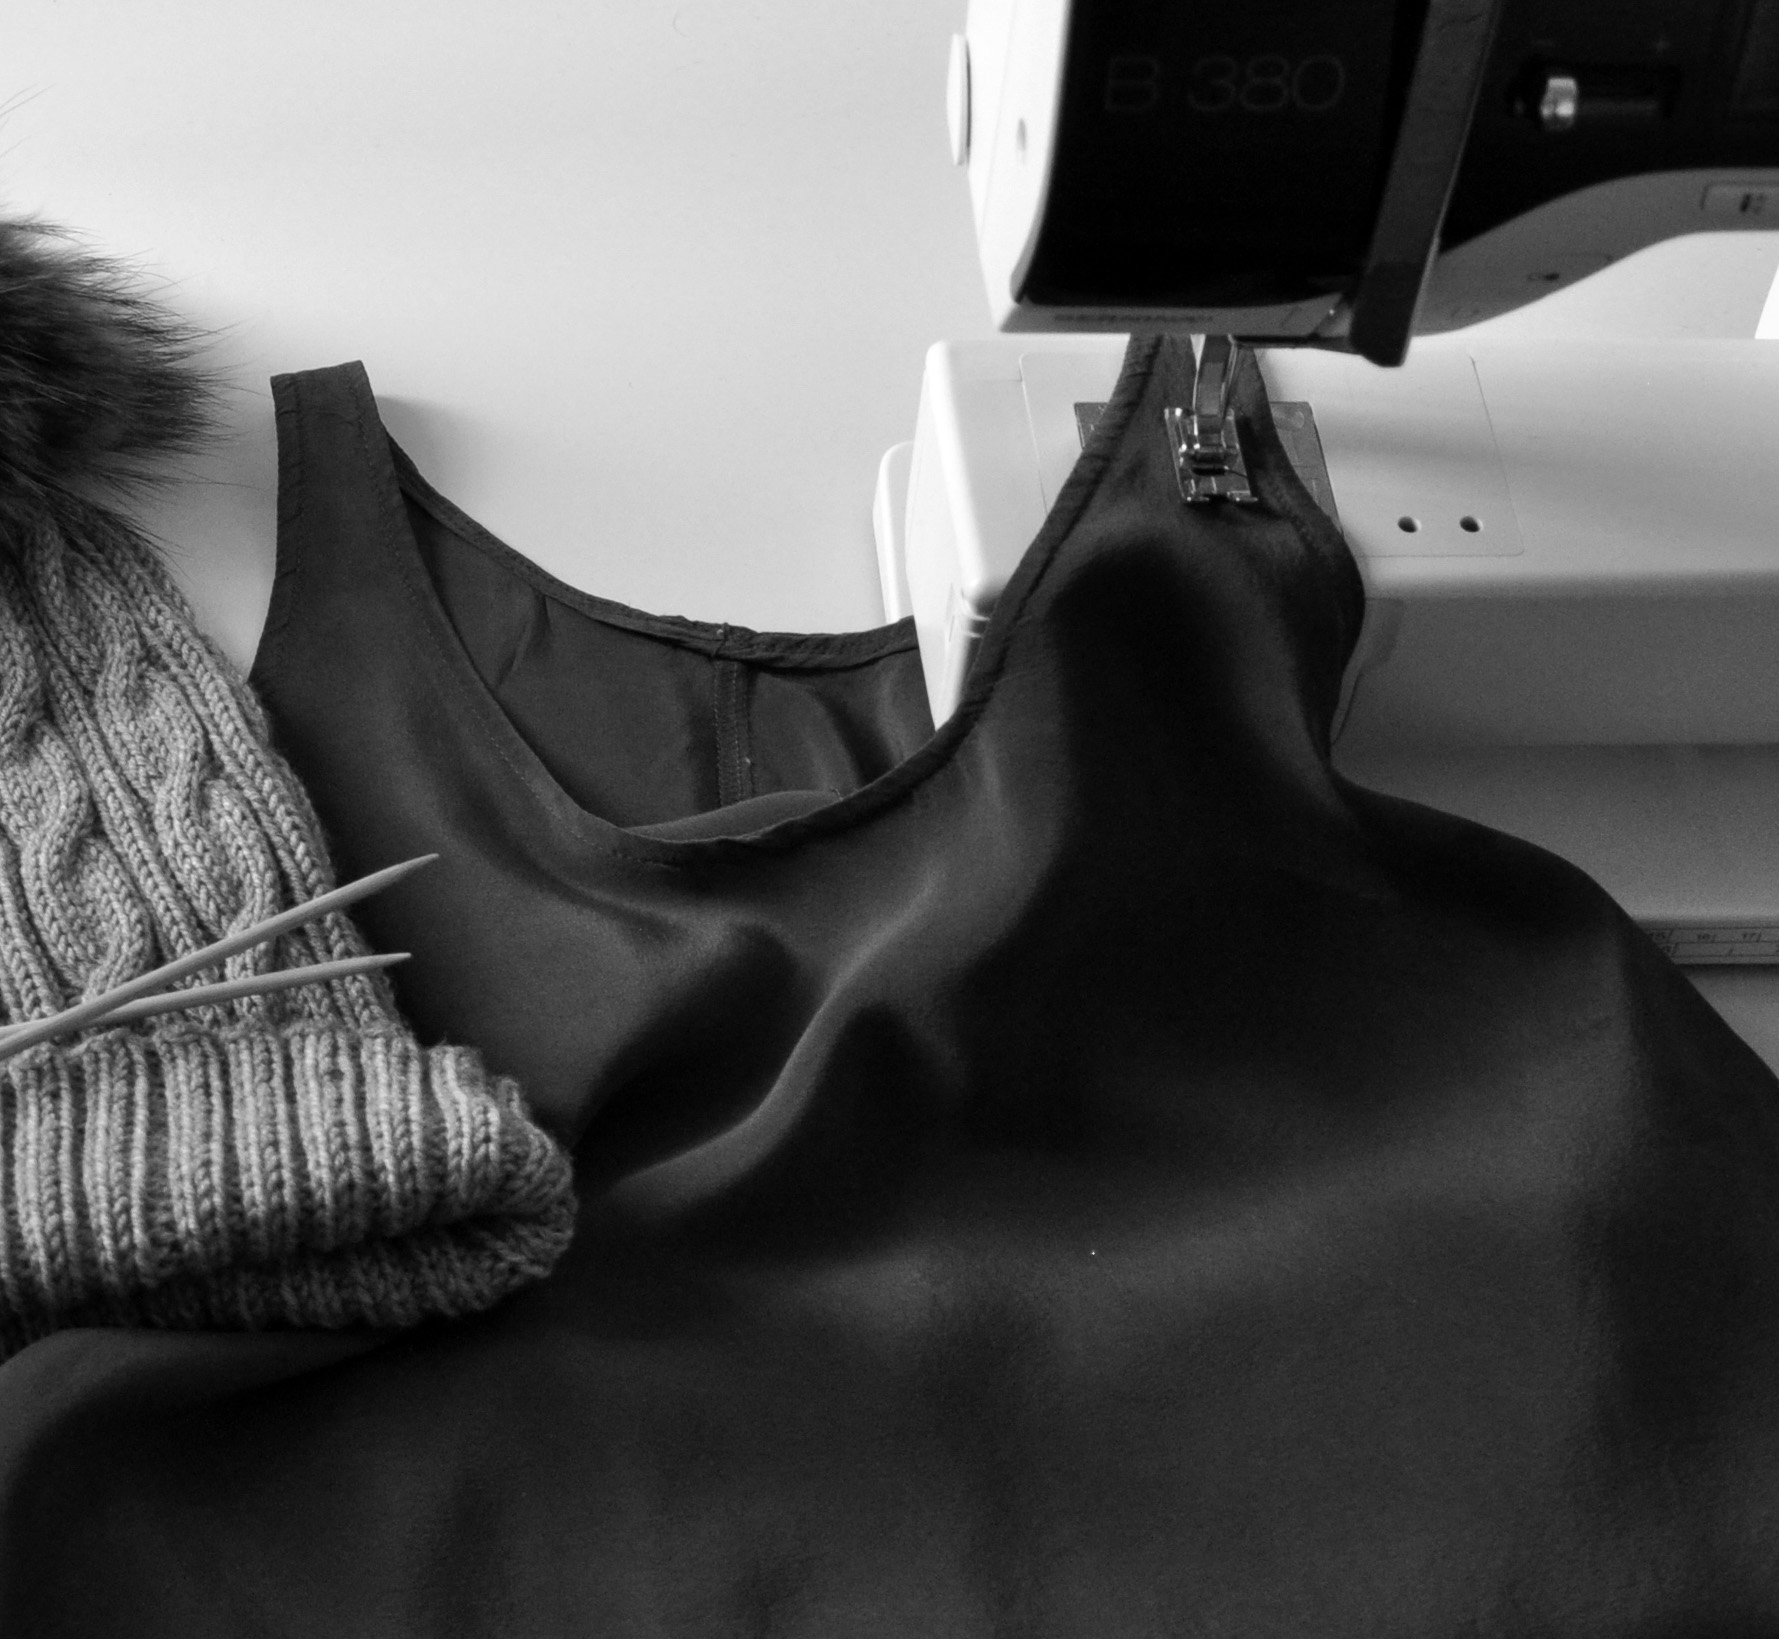 Personal Blog - About knitting, sewing and anything else that makes me happy.